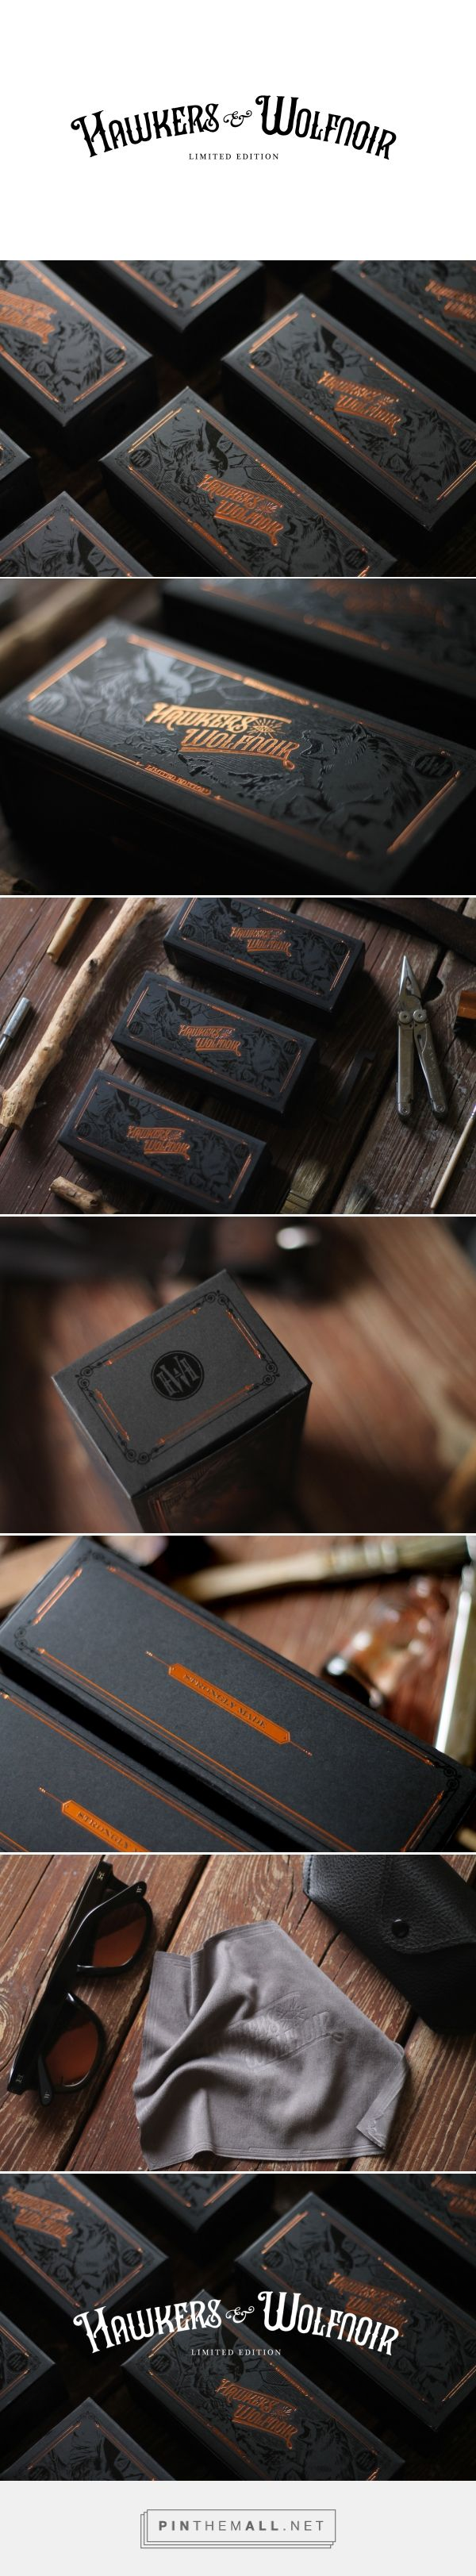 Hawkers & Wolfnoir Ltd. Edition Glasses Packaging by David Sanden   Fivestar Branding Agency – Design and Branding Agency & Curated Inspiration Gallery